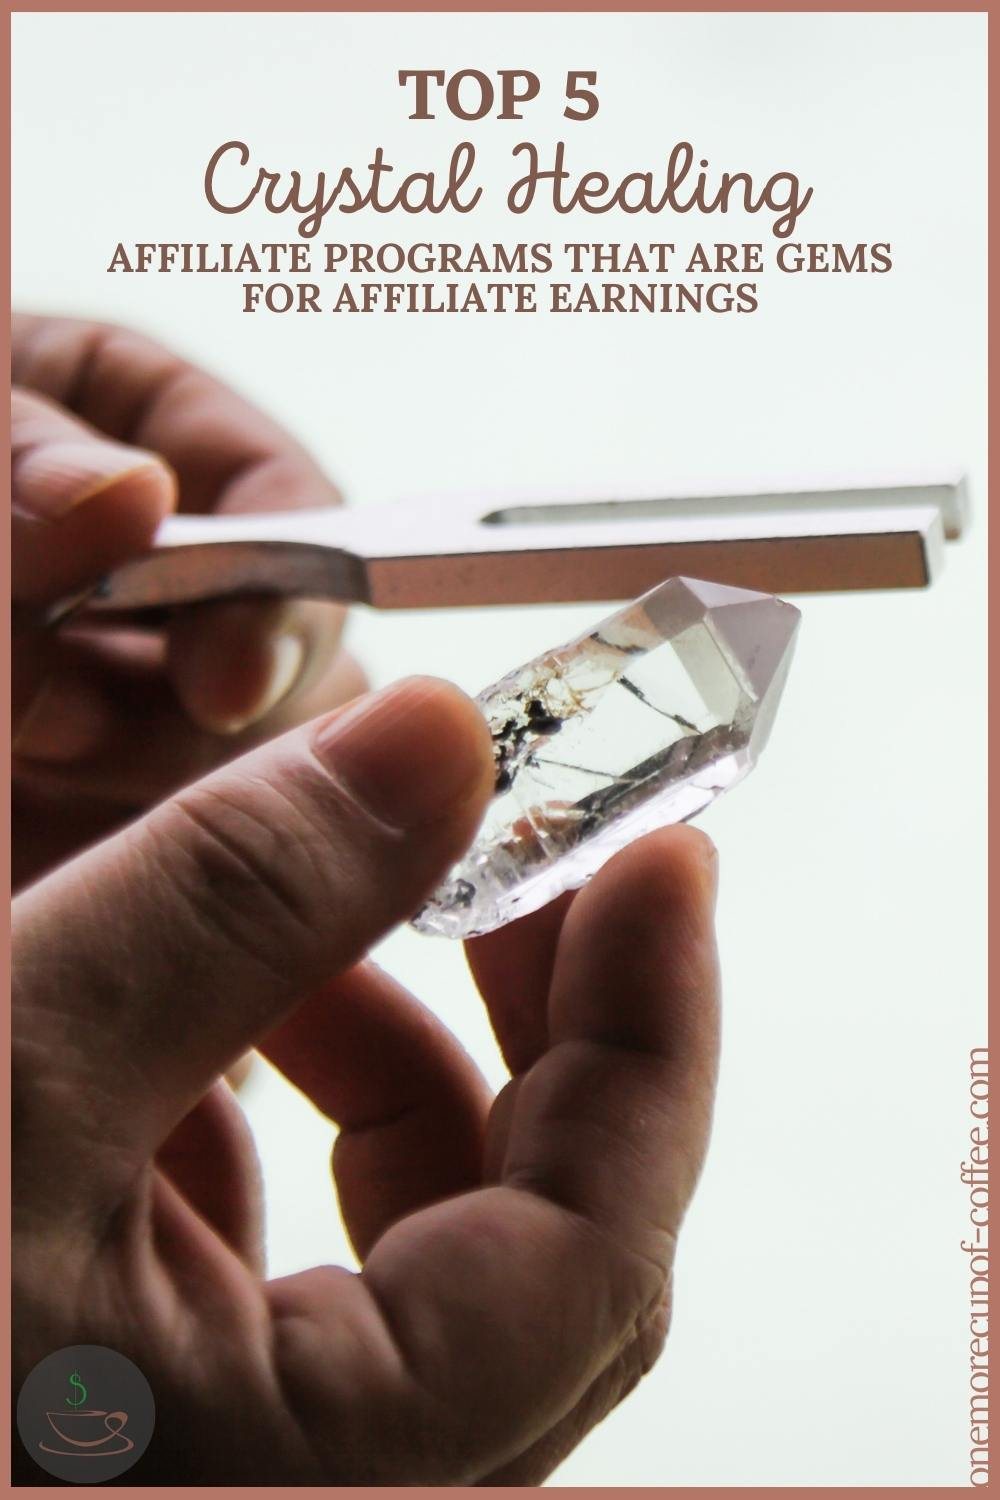 """closeup image of hands holding a clear quartz crystal and a tuning fork, with text overlay """"Top 5 Crystal Healing Affiliate Programs That Are Gems For Affiliate Earnings"""""""